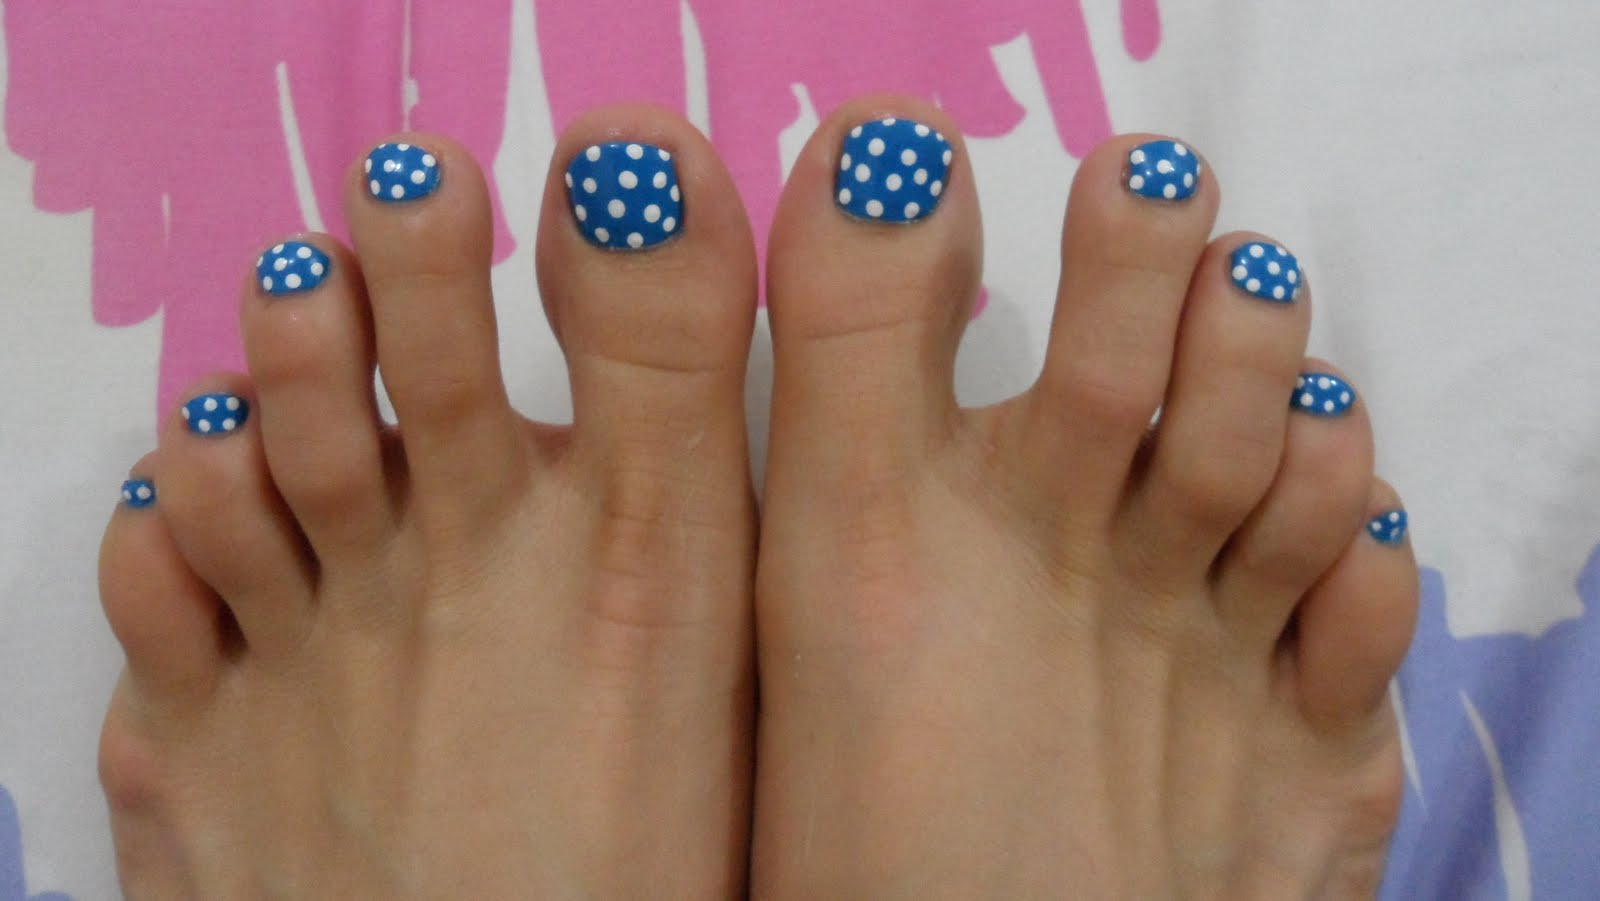 45 best polka dots toe nail art design ideas blue and white polka dots nail art for toe prinsesfo Image collections